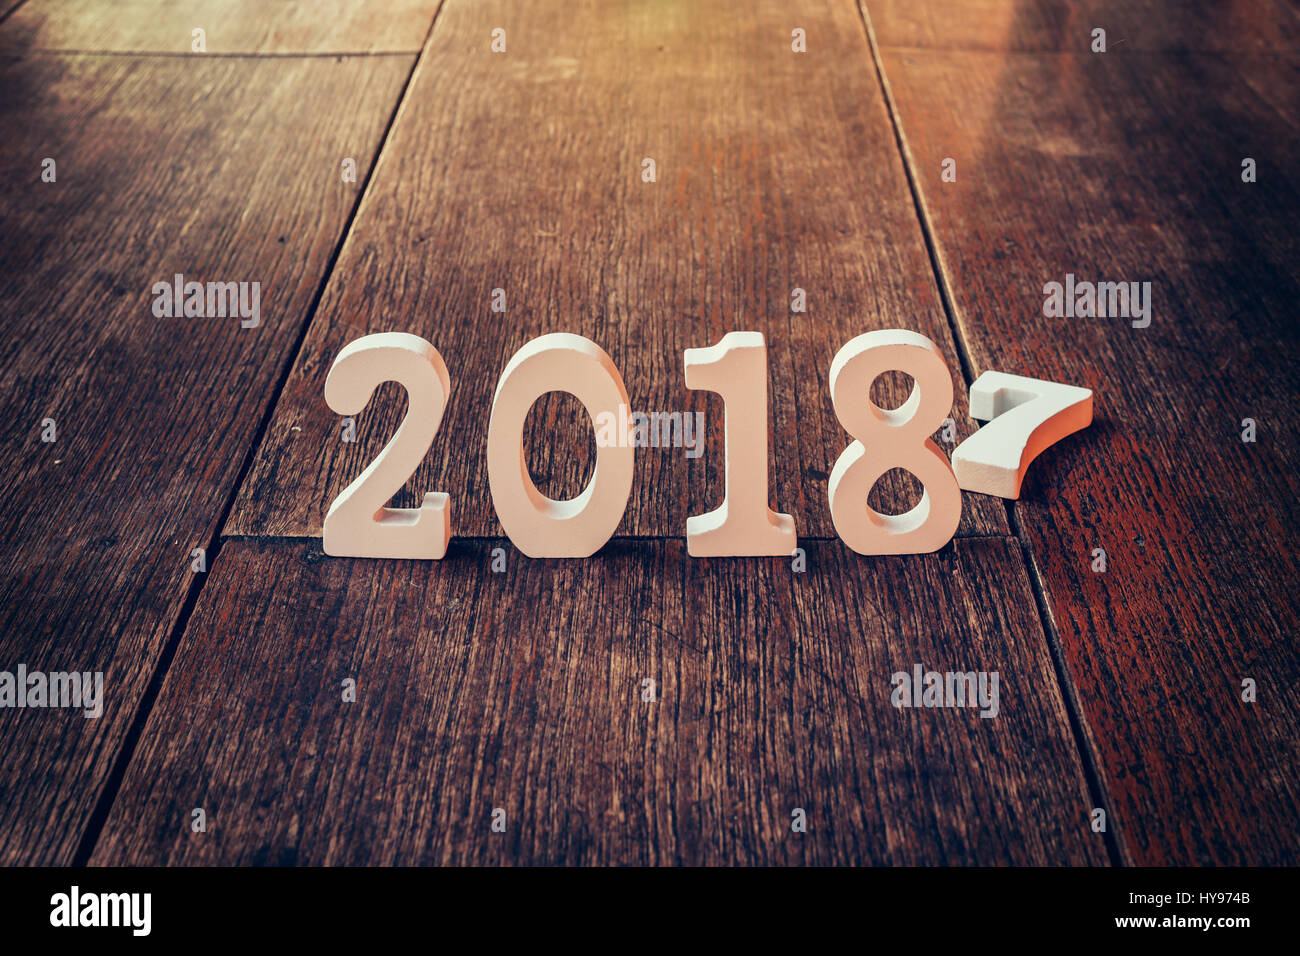 wooden numbers forming the number 2018 for the new year 2018 on a